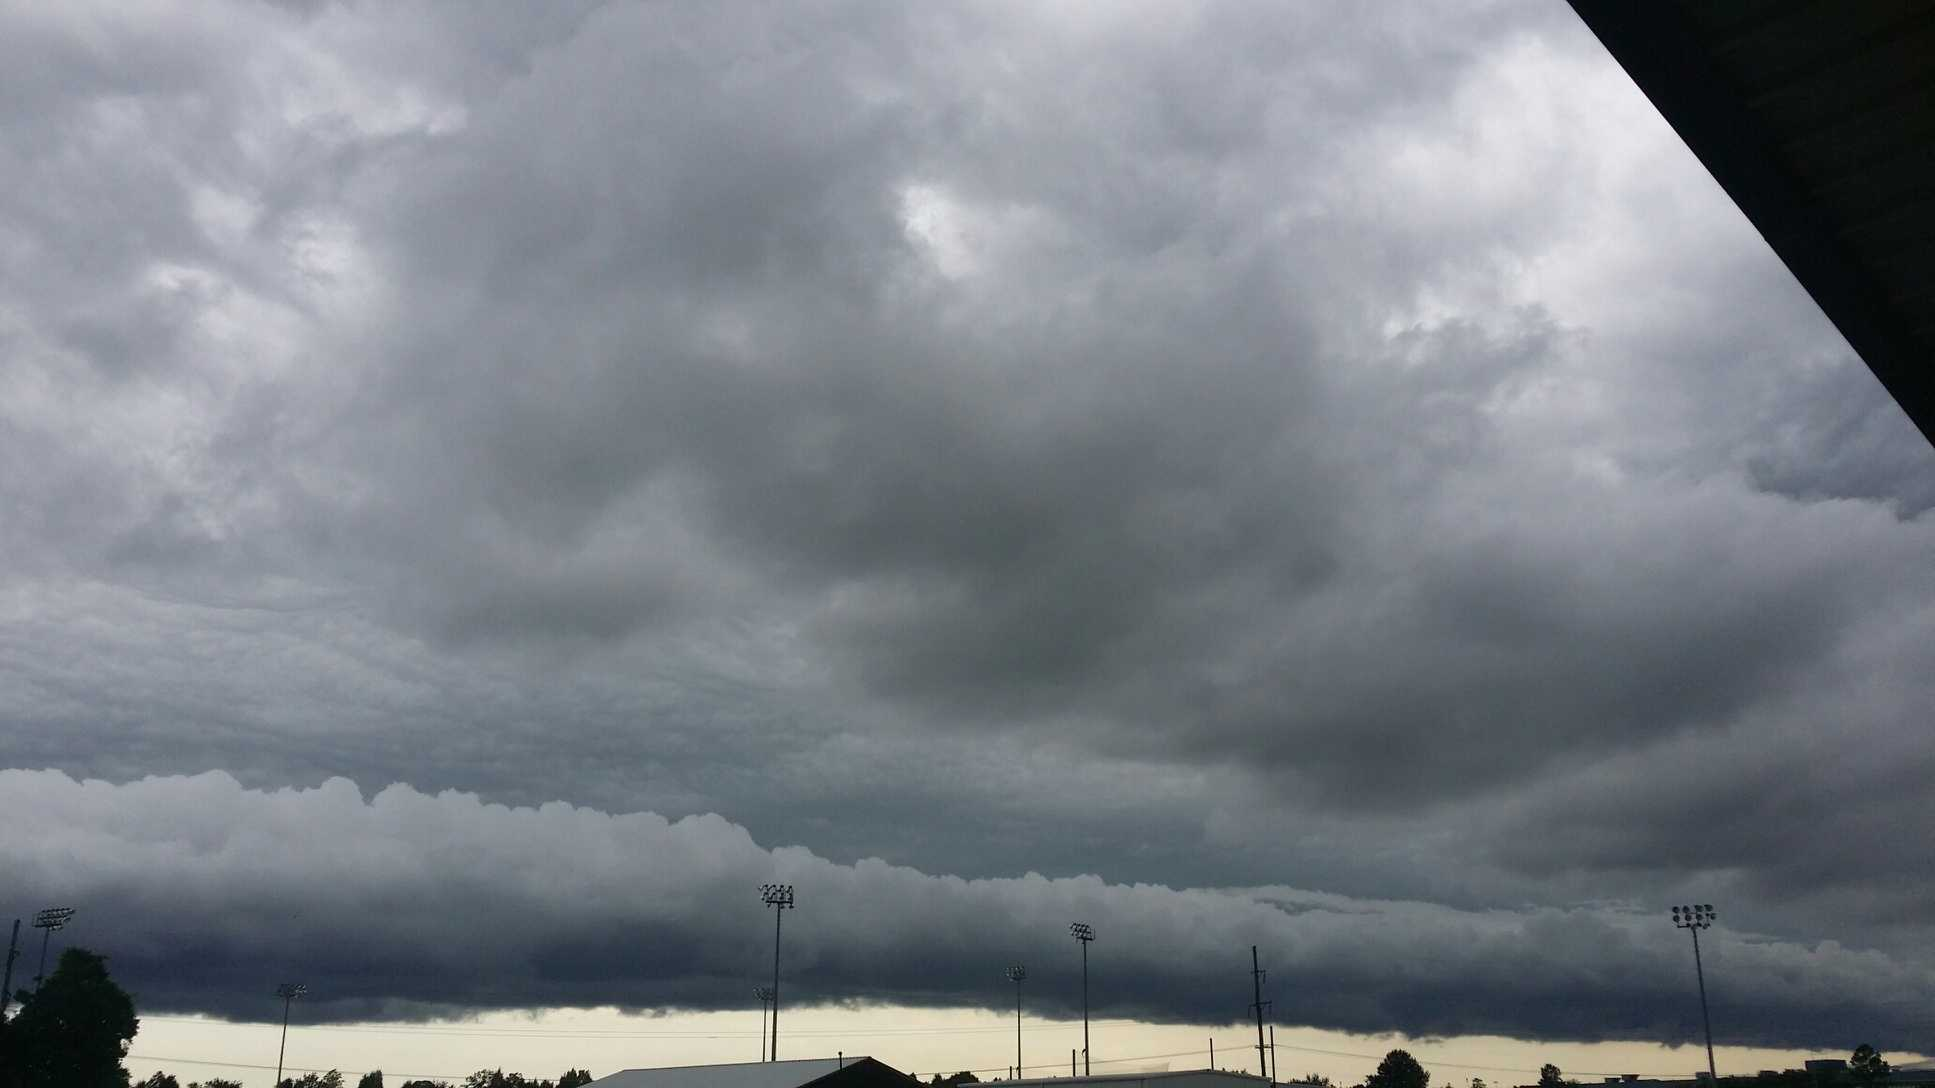 Photo taken by Jeremy Medlock in Fort Smith, AR.